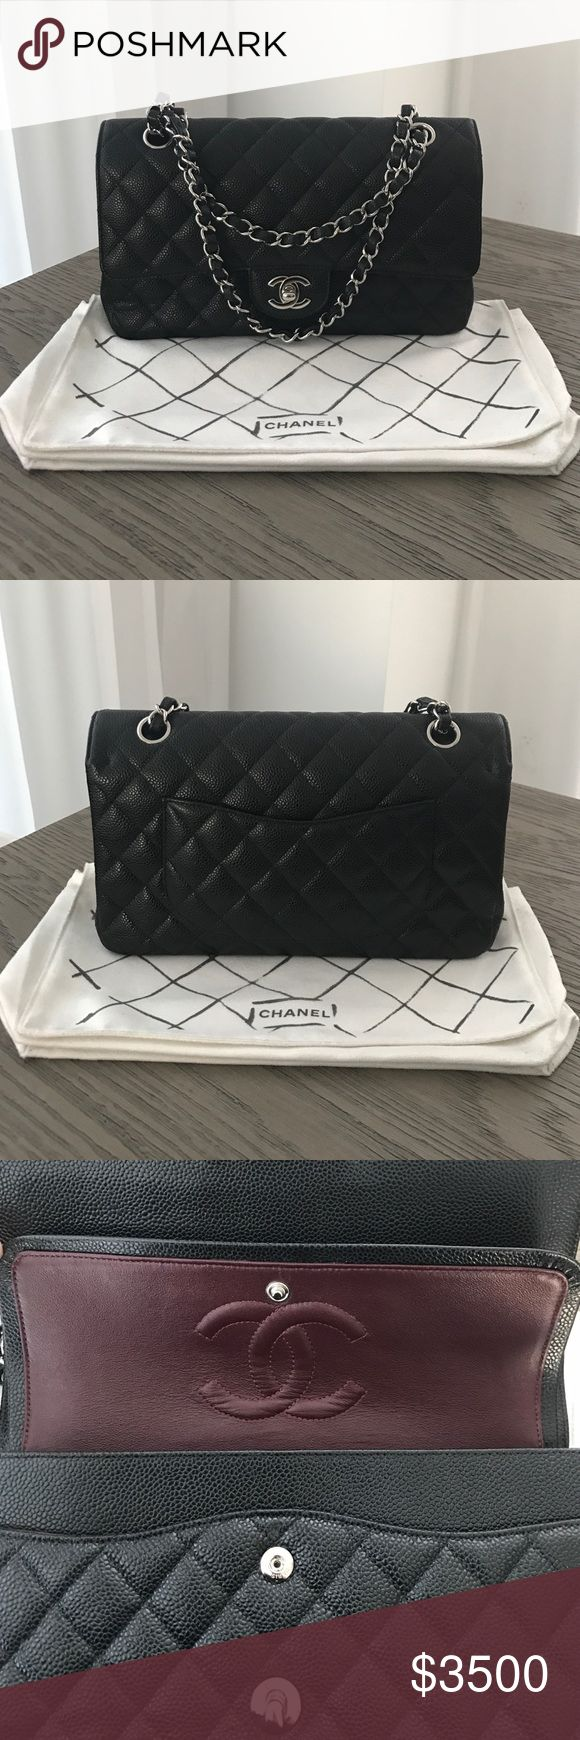 Black Chanel Classic Caviar Medium Size Bag Up for sale is a Classic Chanel Caviar Medium Size Bag in Black. Comes with original card and dust bag. CHANEL Bags Shoulder Bags